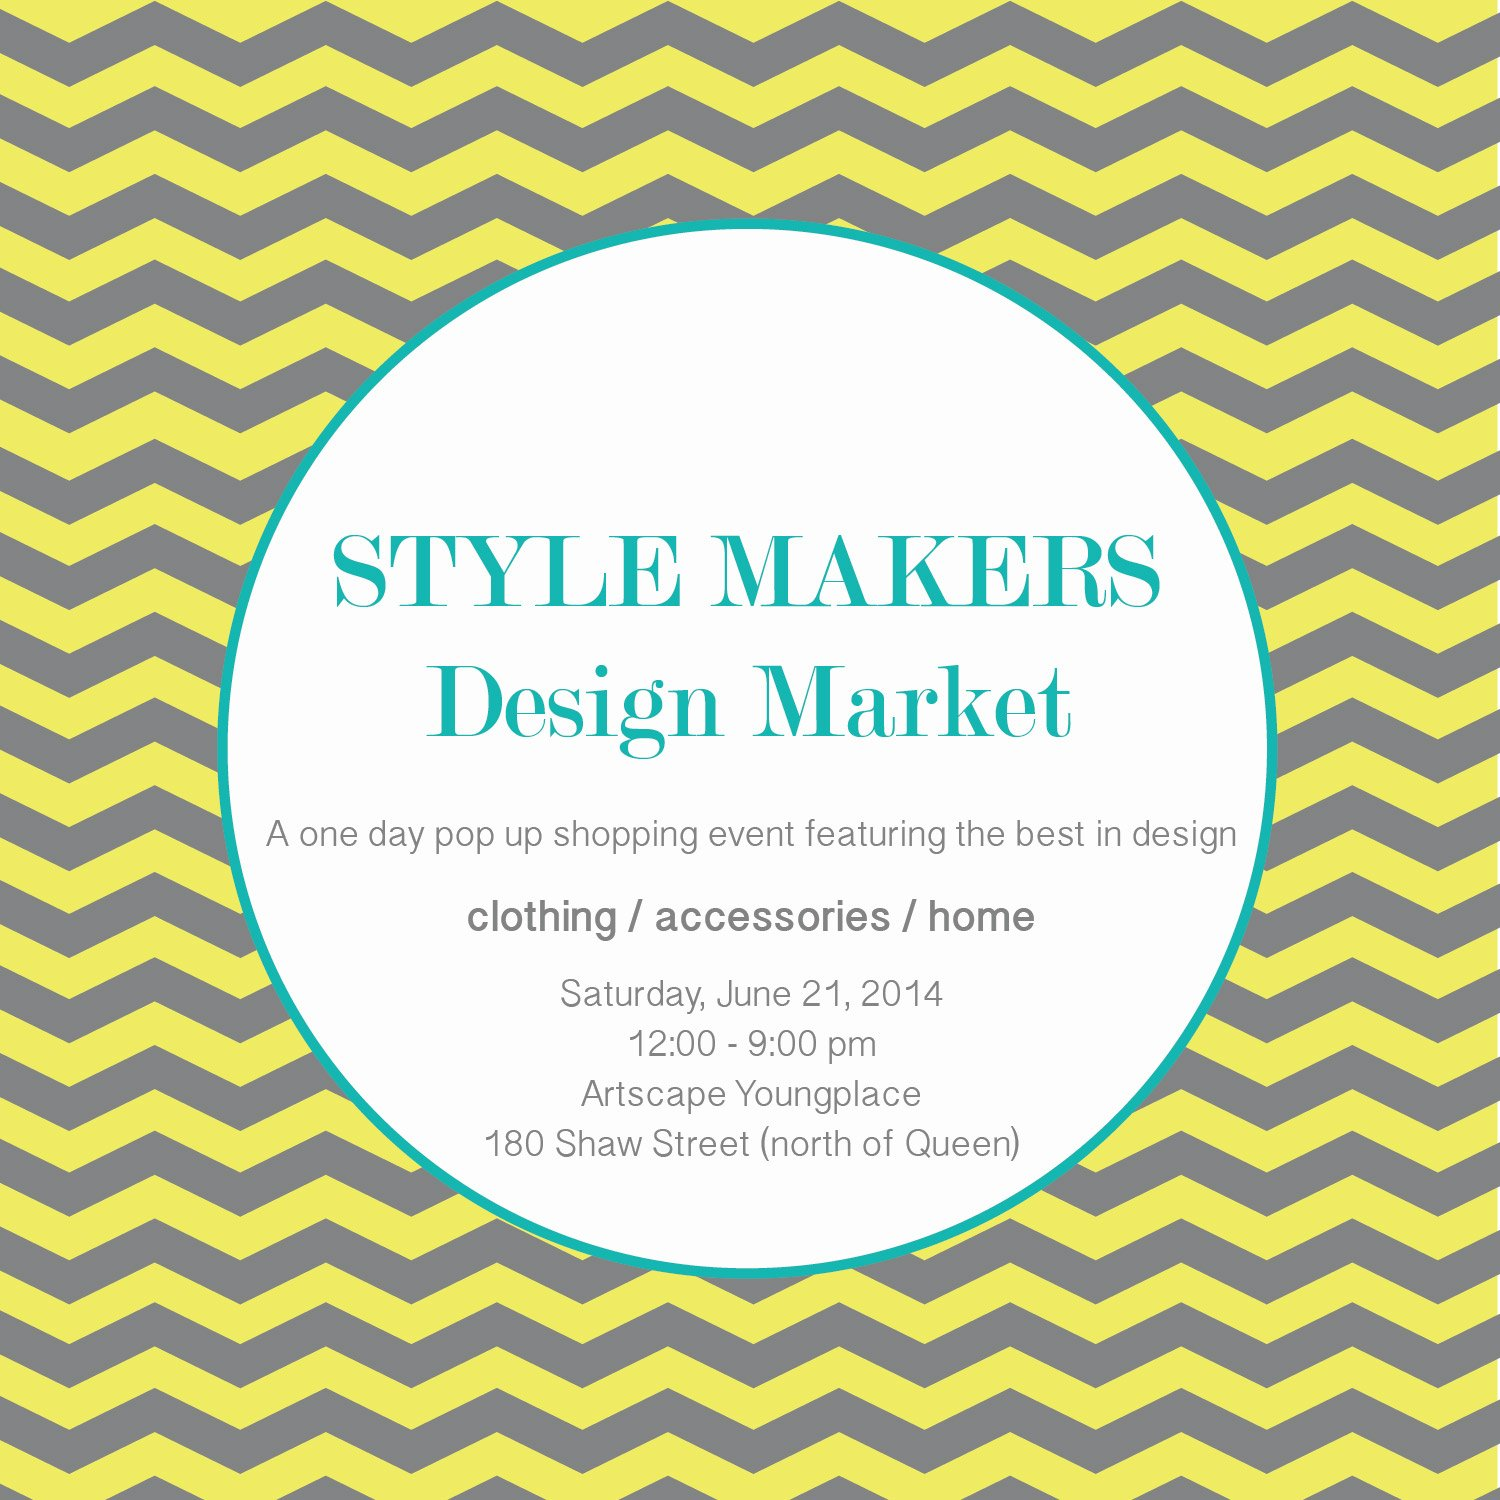 STYLE MAKERS Design Market